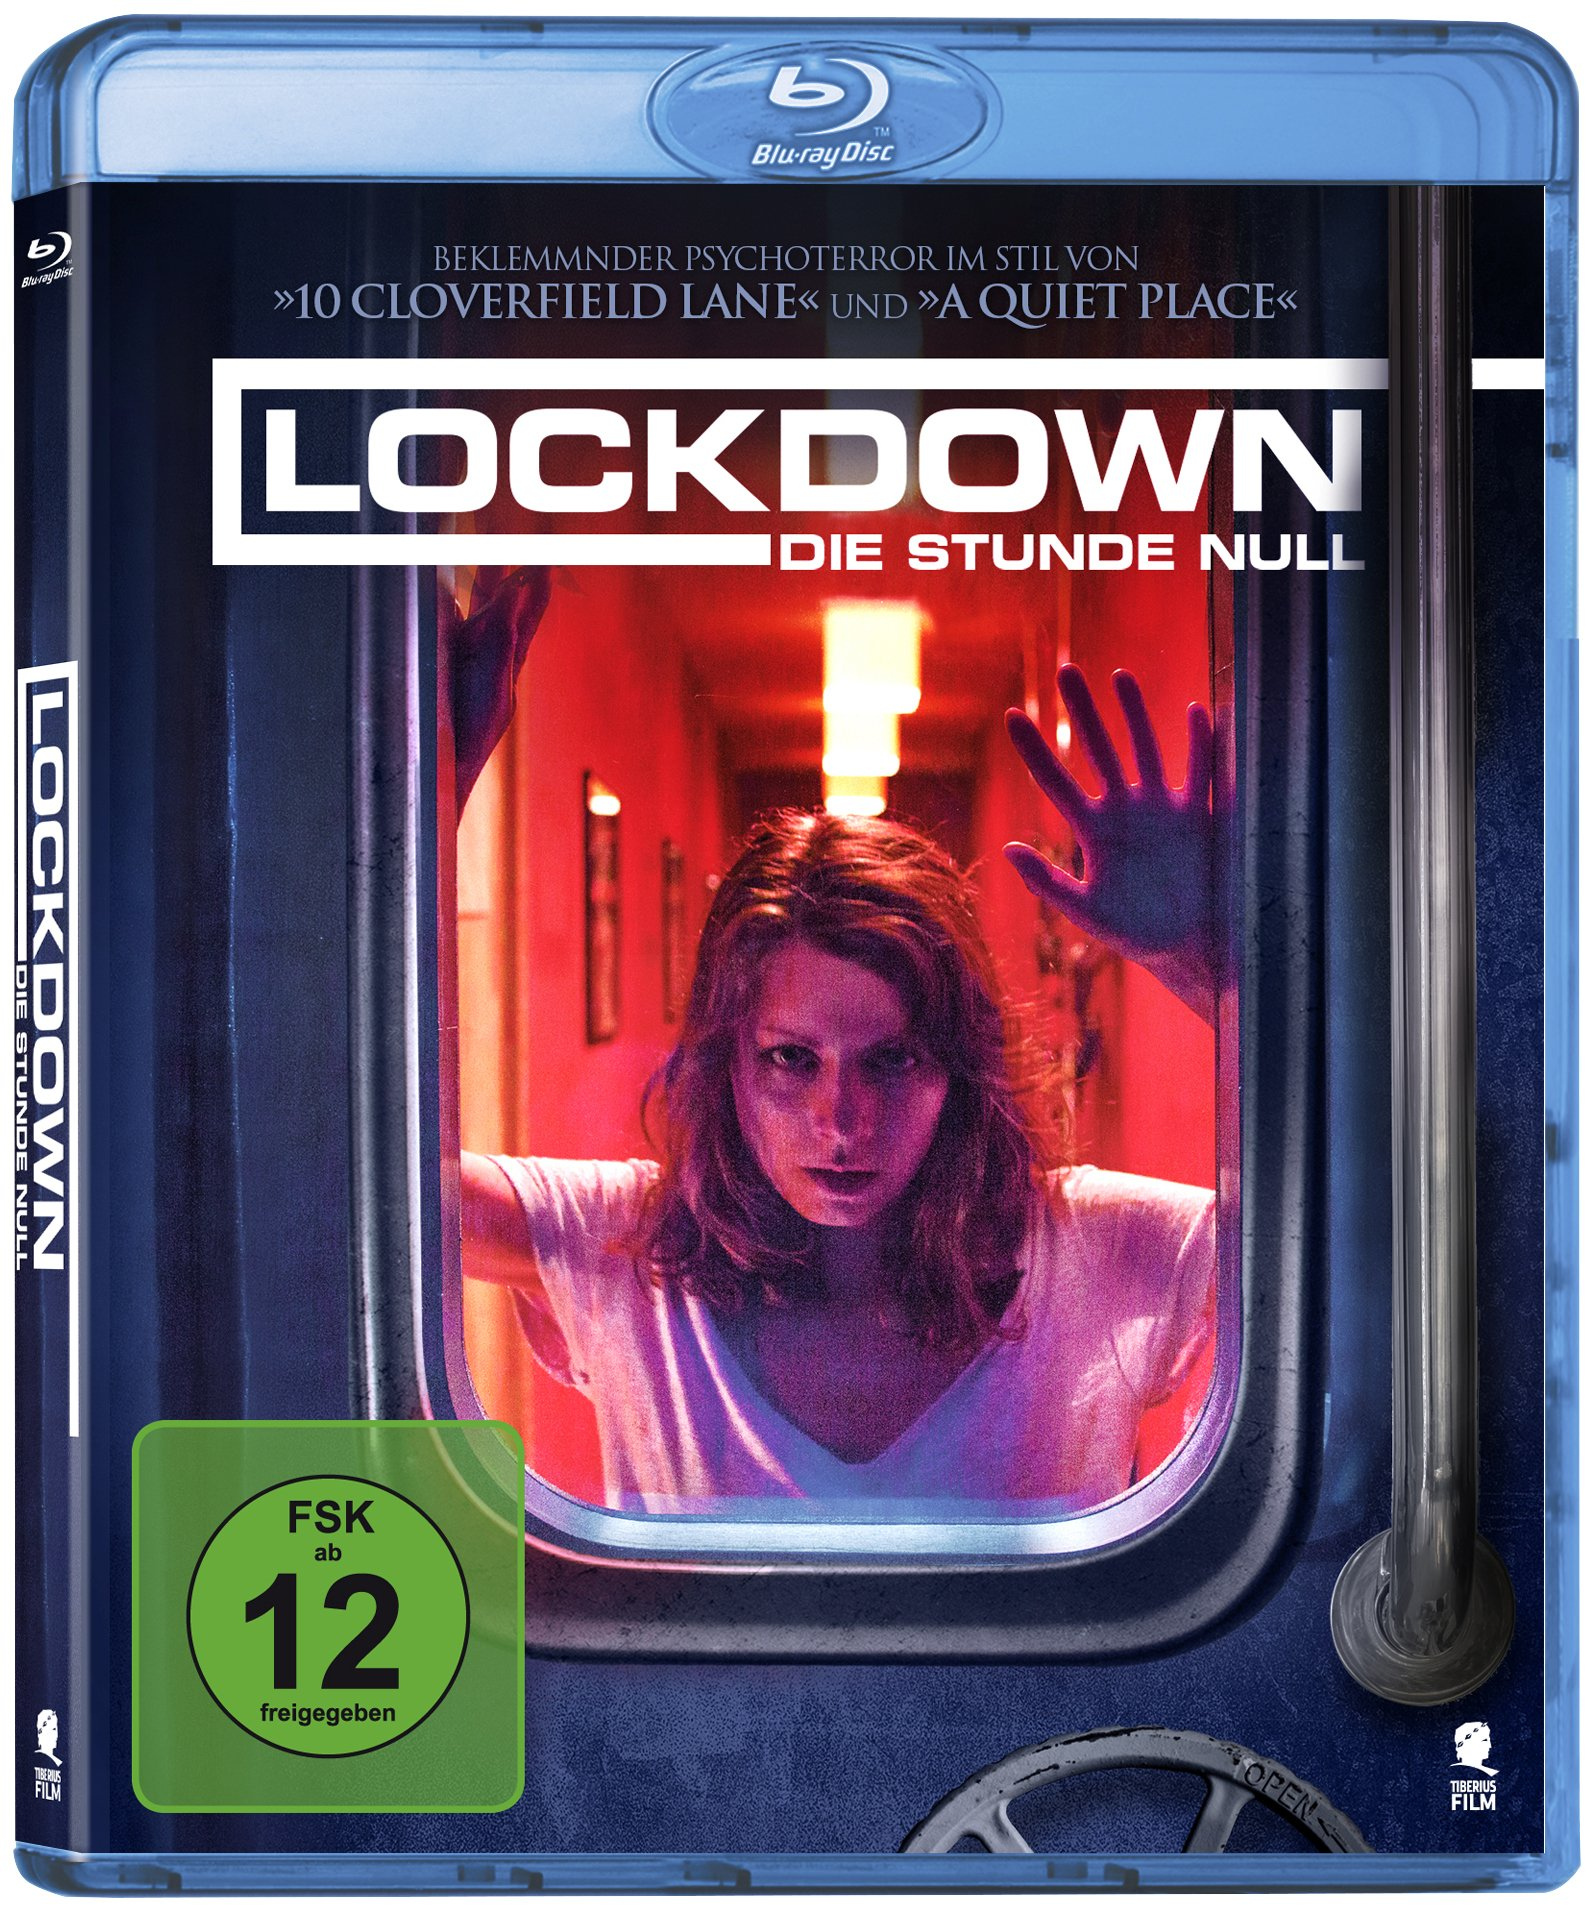 download Lockdown.Die.Stunde.Null.2017.German.DTS.720p.BluRay.x264-LeetHD